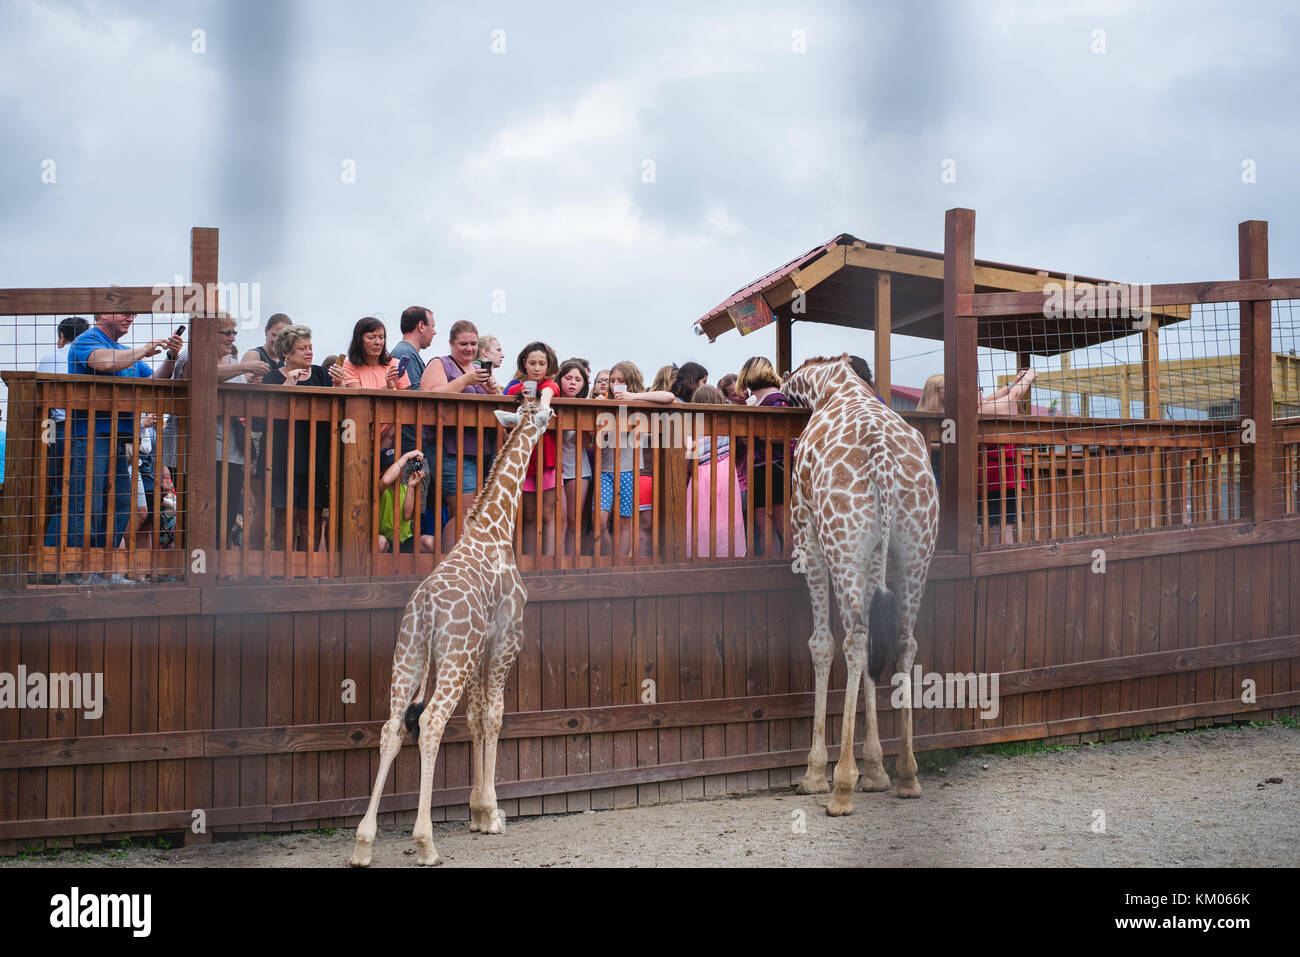 April the Giraffe and her son Tajiri visit with people at Animal Adventure Park in Harpursville, NY - Stock Image